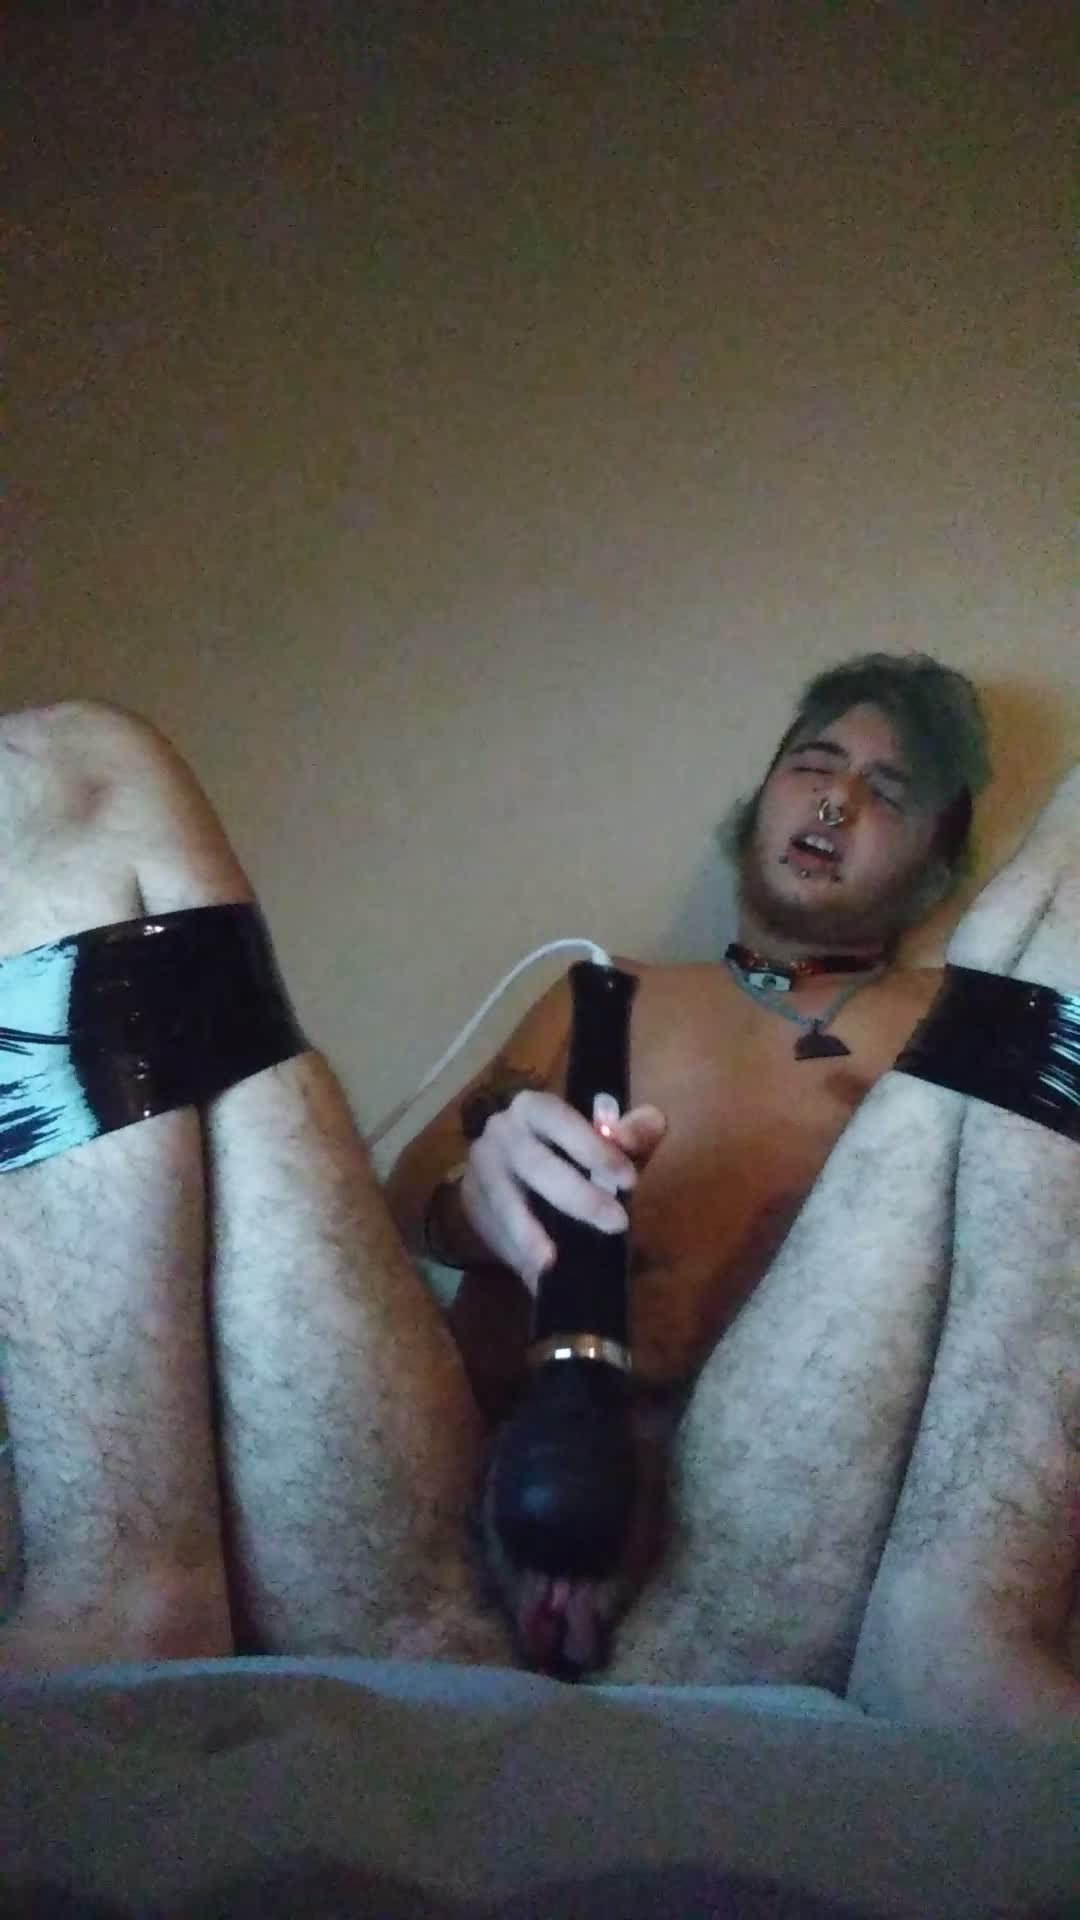 erosdrake-Manyvids-Bound FtM Cums Over and Over from Wand-Trans Male, Bondage, Hitachi